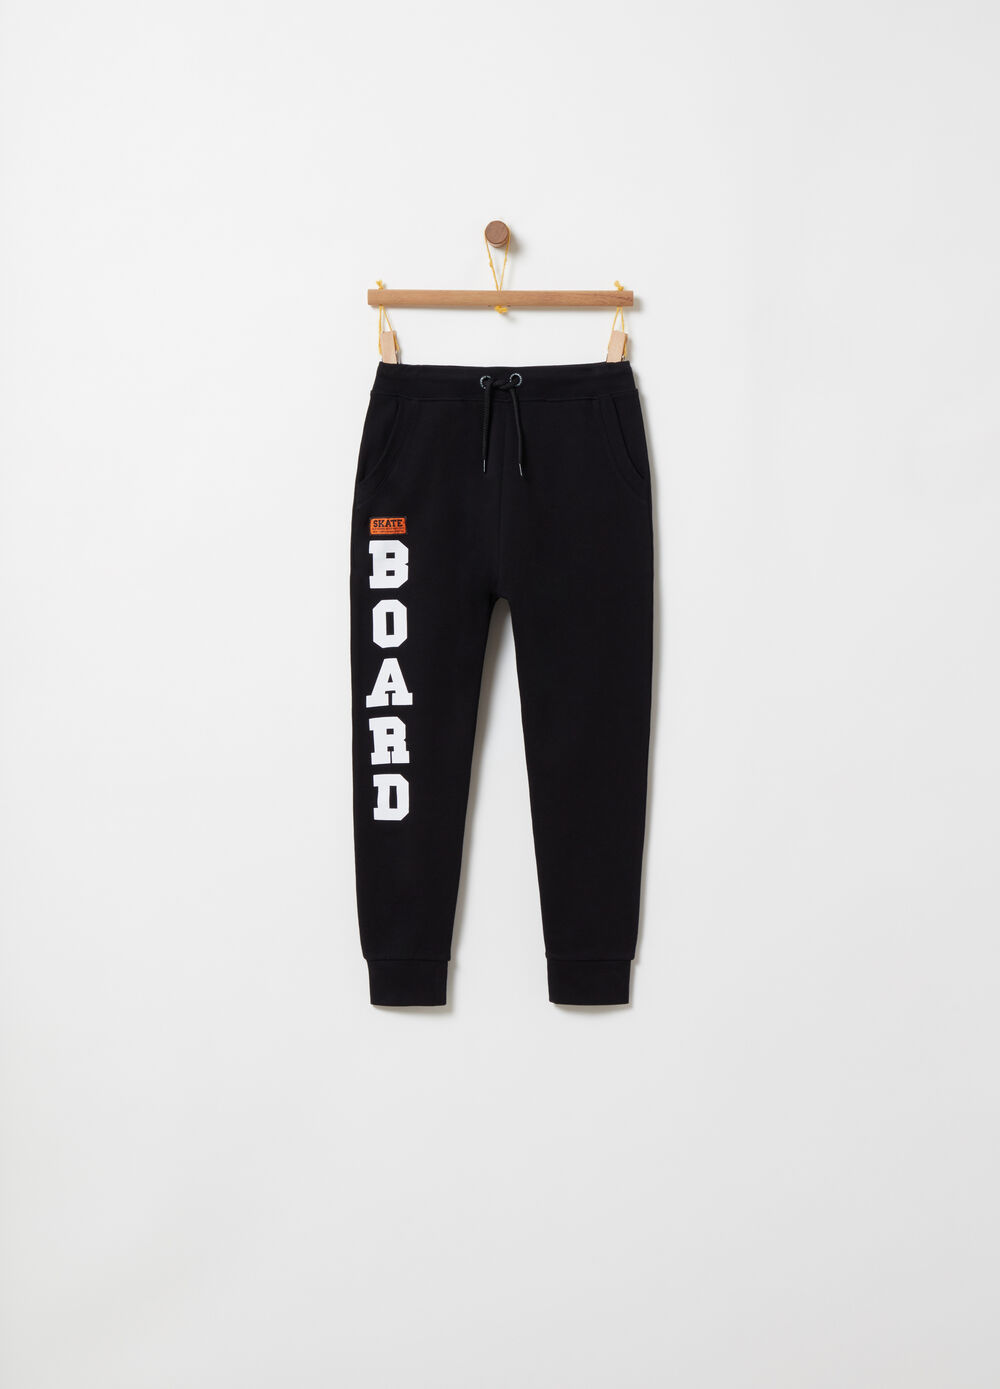 Trousers with low crotch, print and label